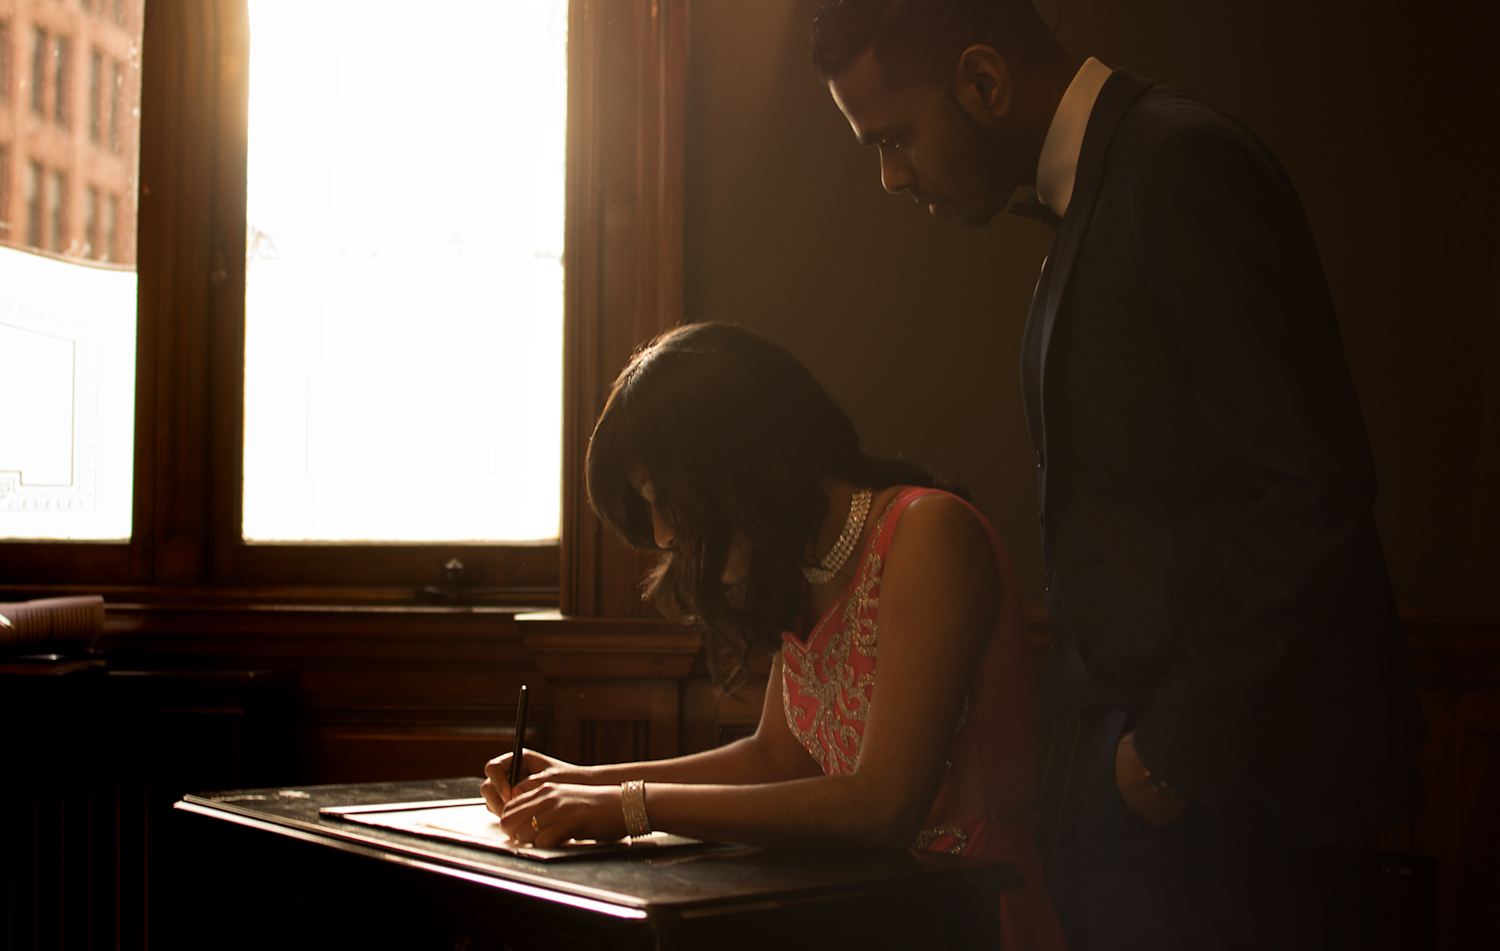 chris-wallace-wedding-photography-glasgow-scotland-montrose-street-registry-office-clyde-suite-backlight-signing-of-the-registar-singed-sealed-delivered-1500.jpg